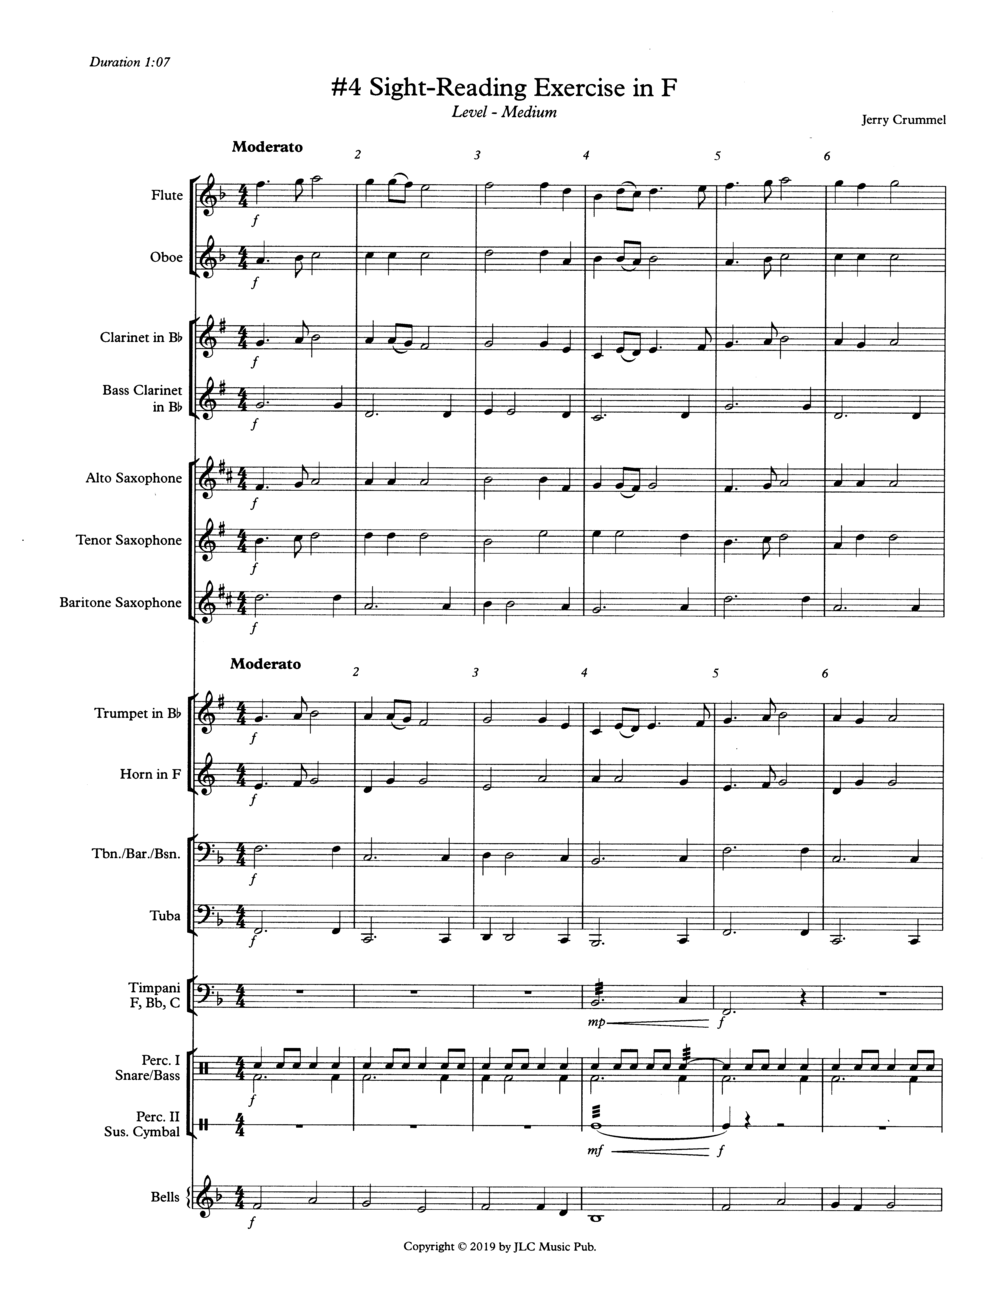 #4 Sight-Reading Exercise in F02122019.png